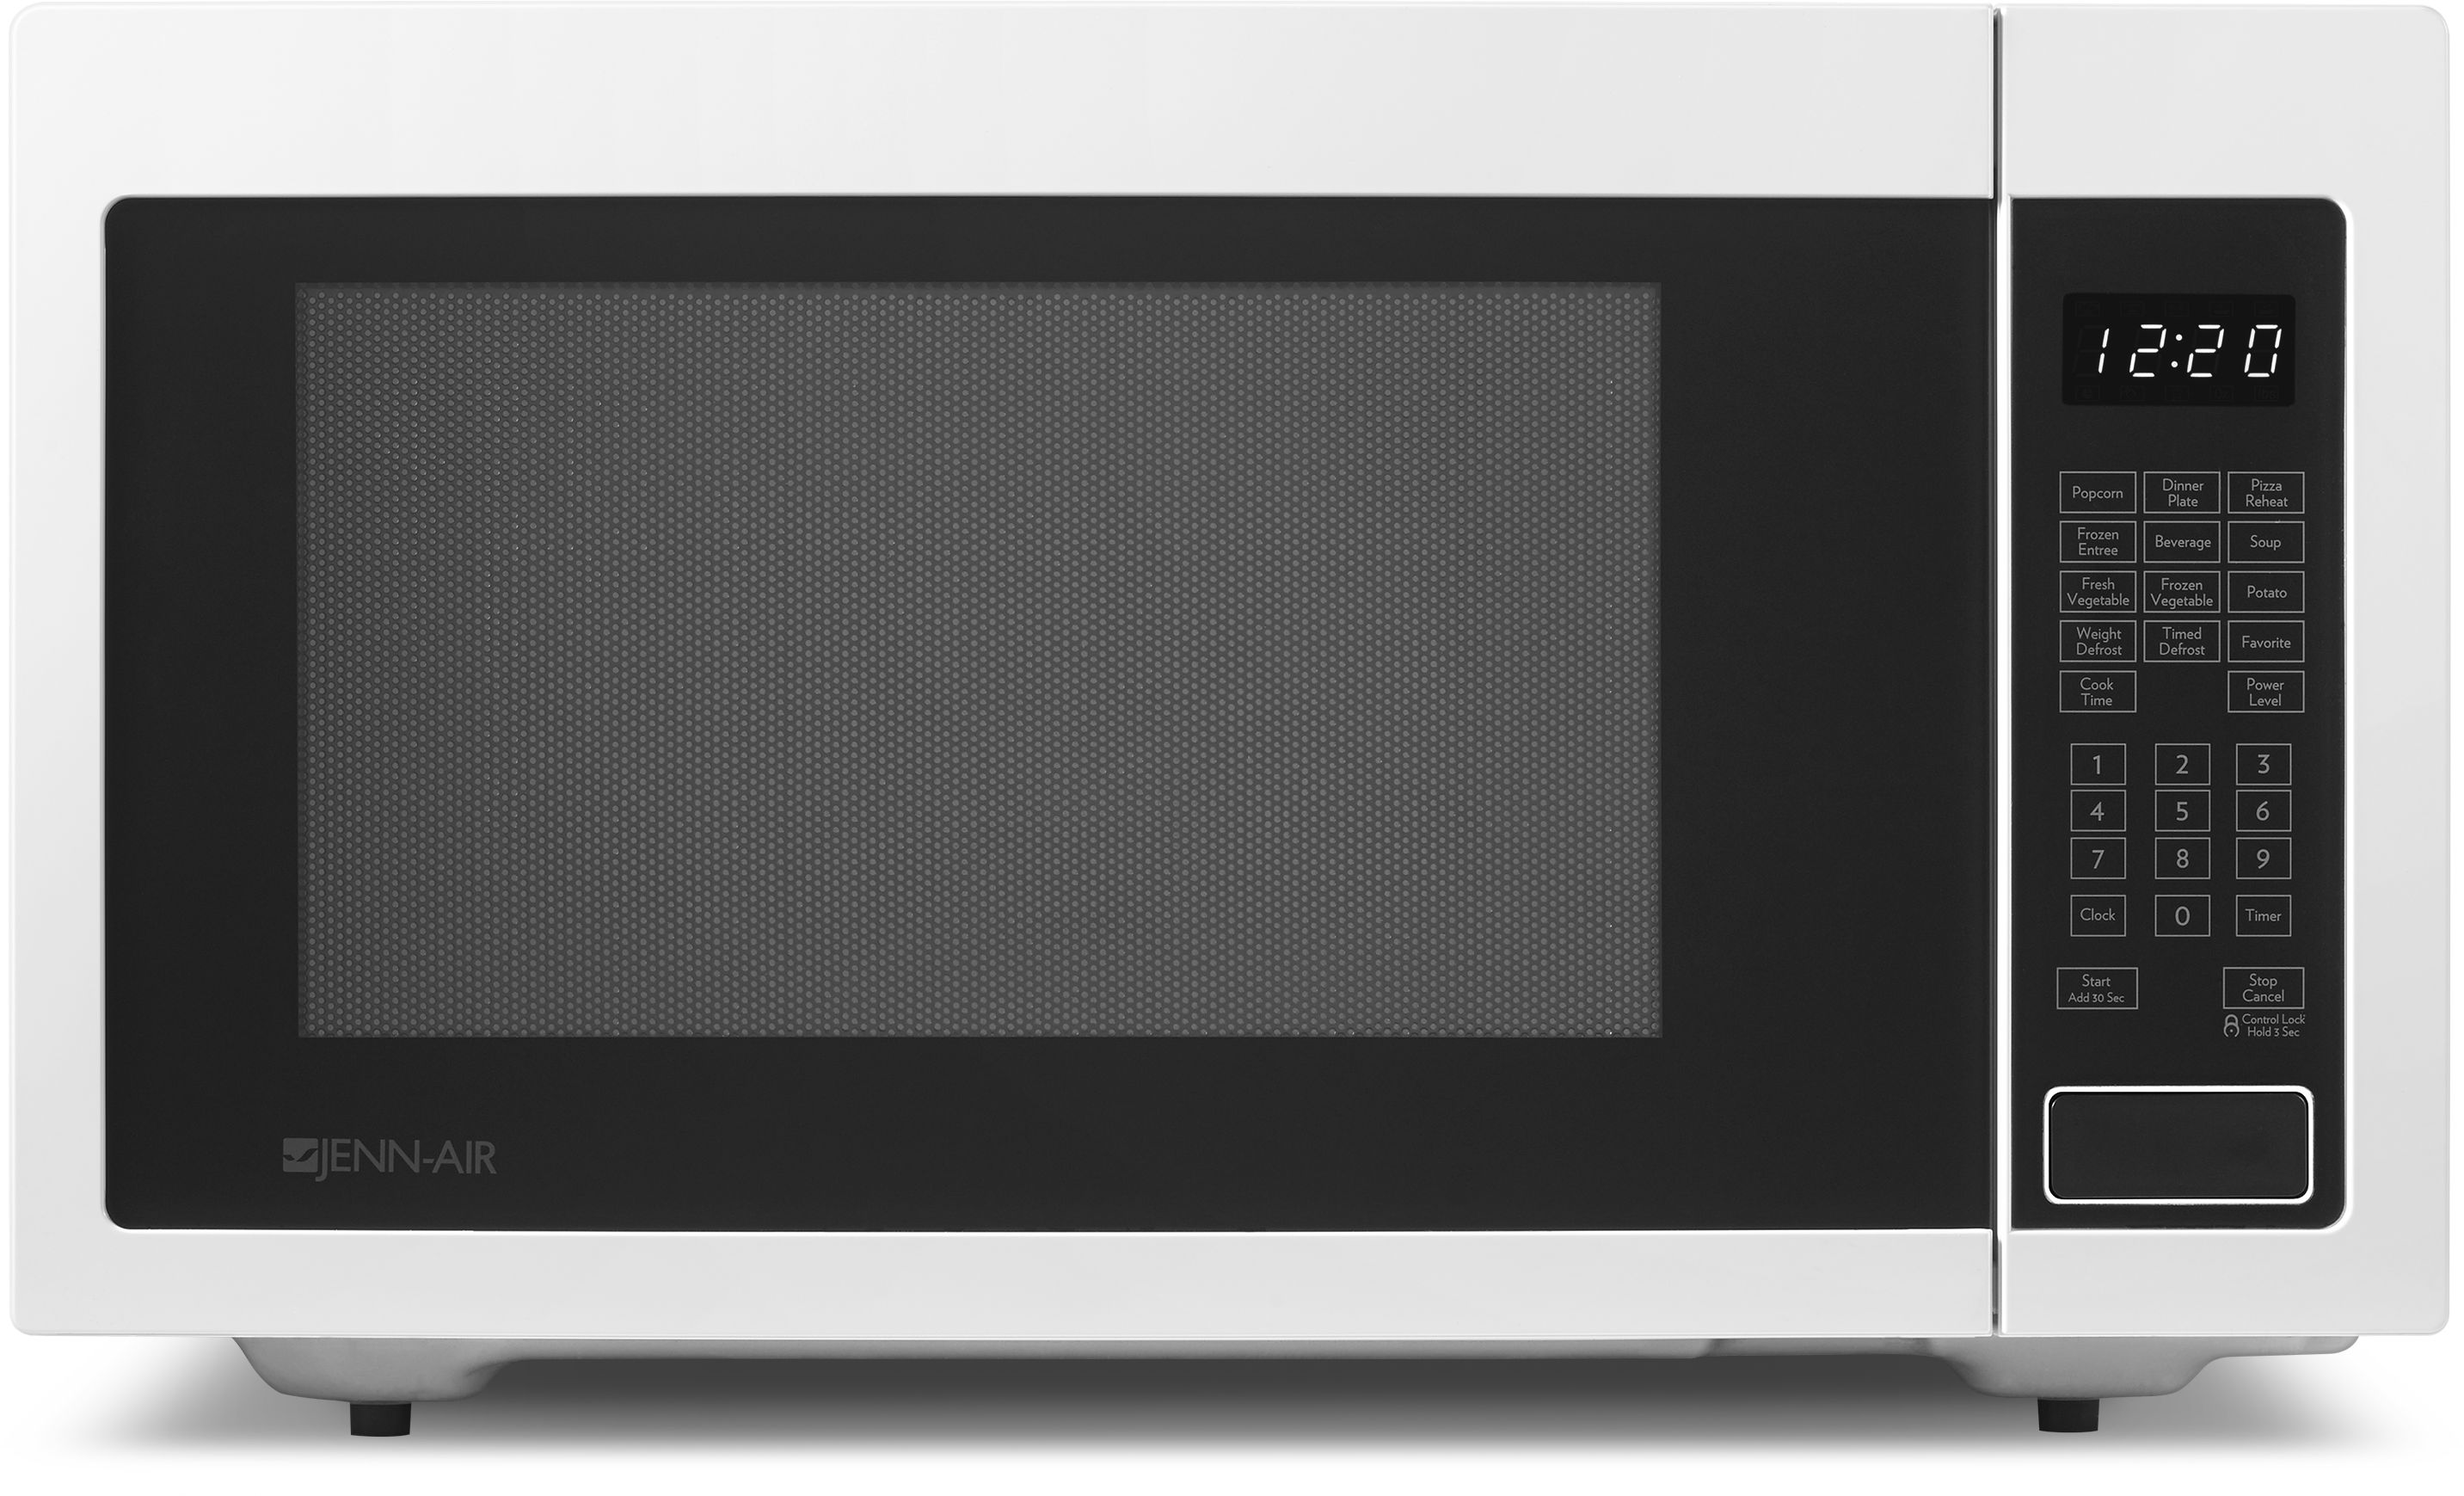 Jenn-Air® Countertop Microwave Oven-White-JMC1116AW | Home ...